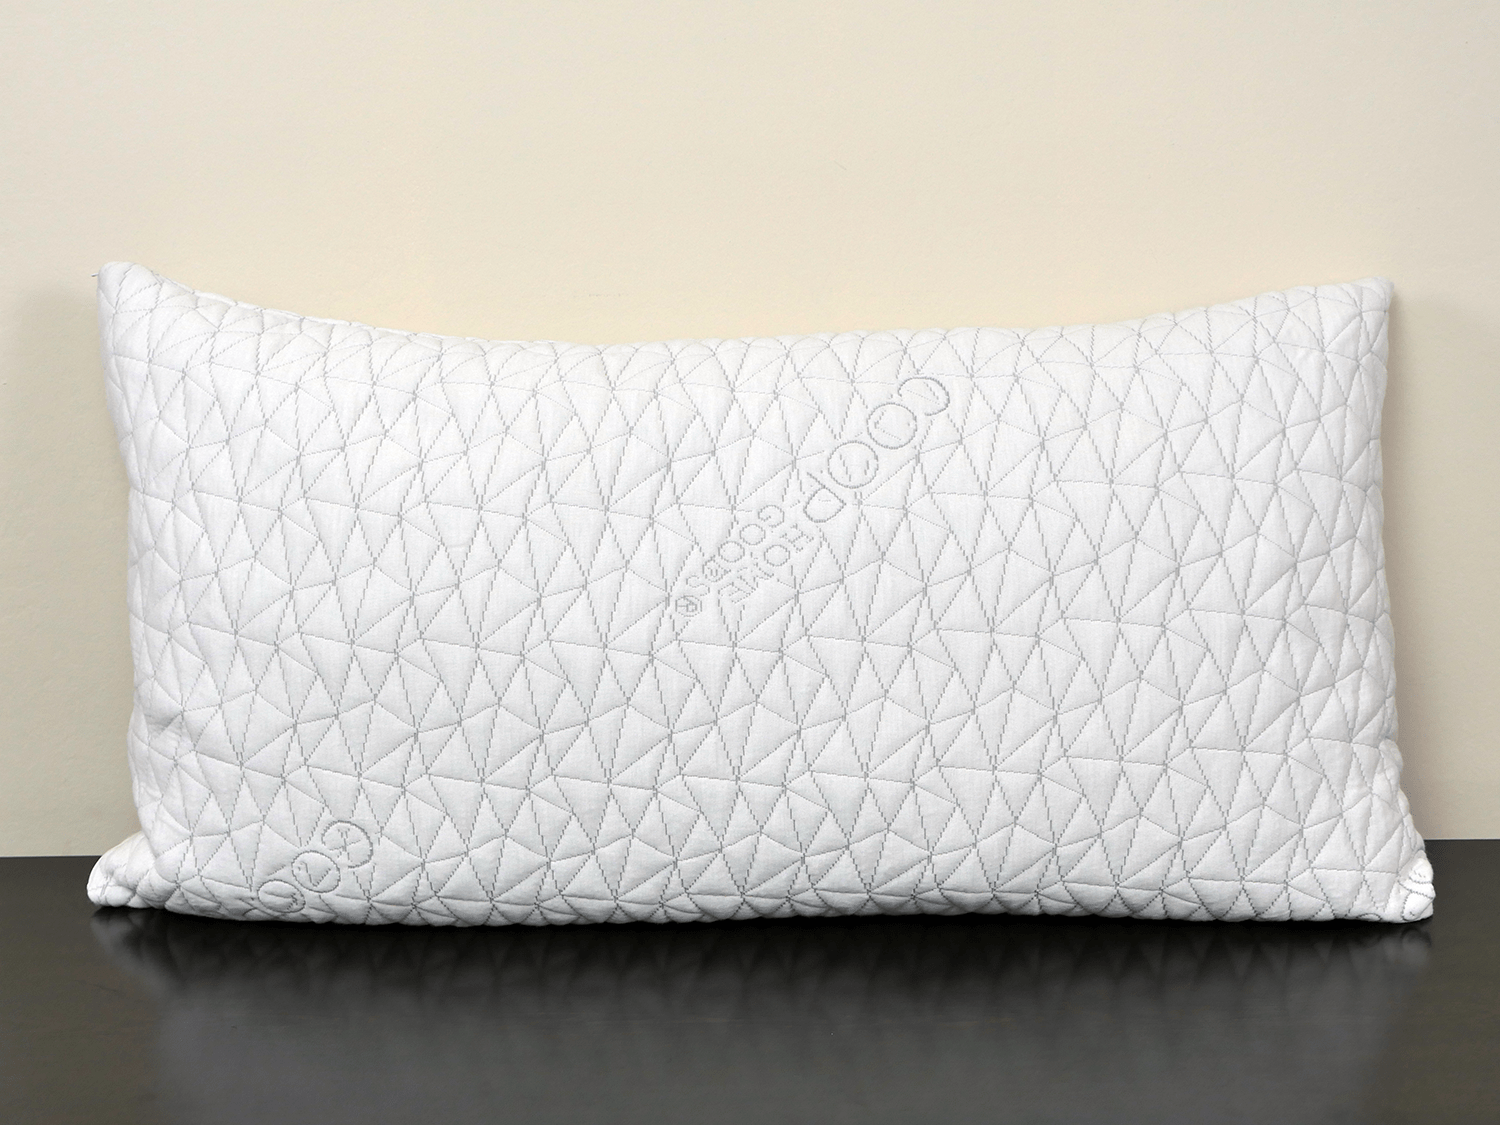 coop home goods pillow review 2021